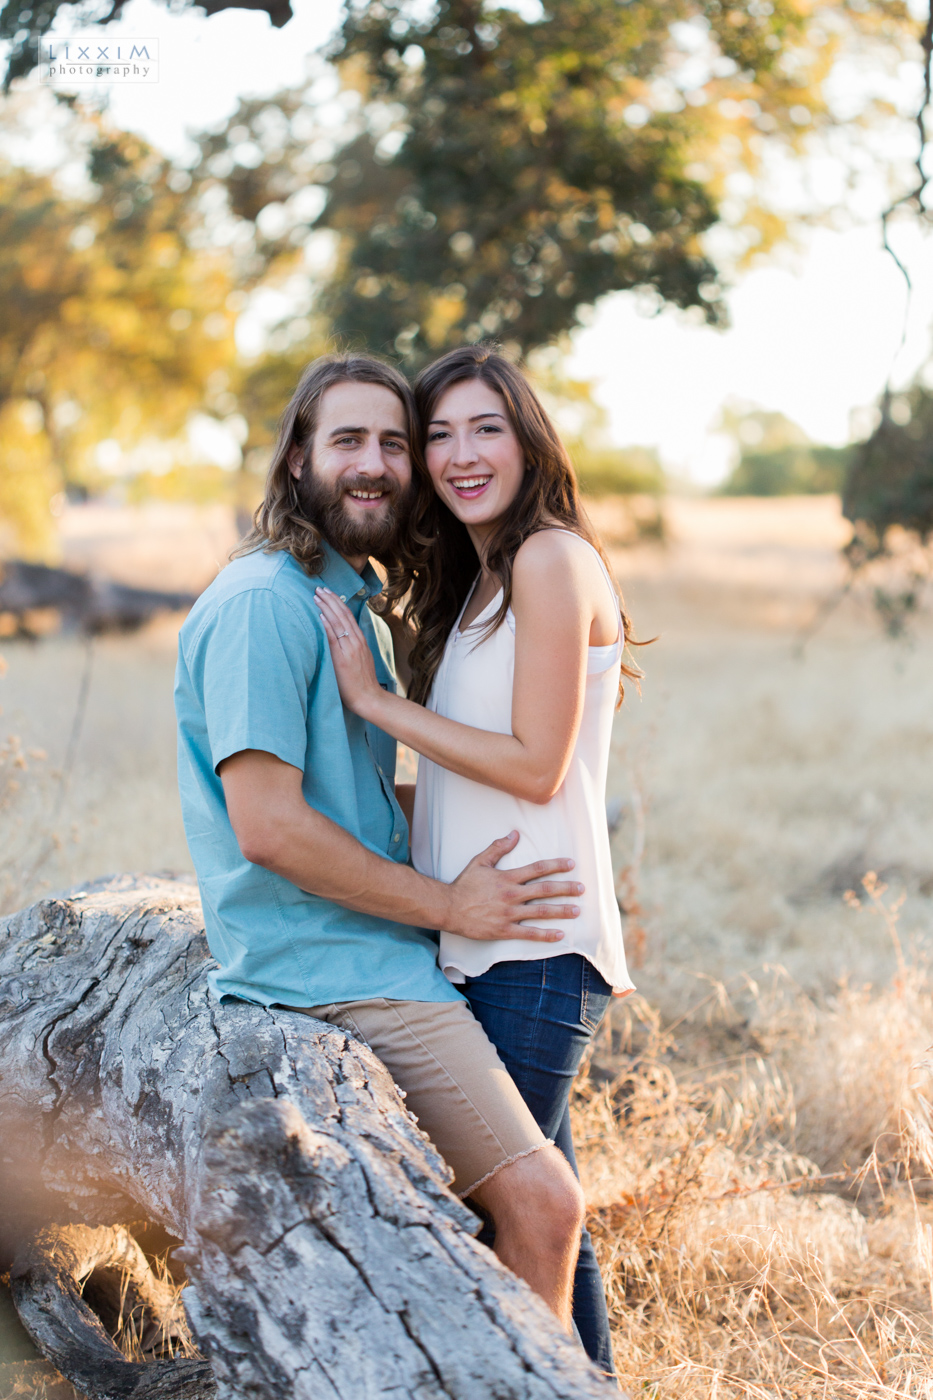 folsom-california-engagement-session-photography-10.jpg